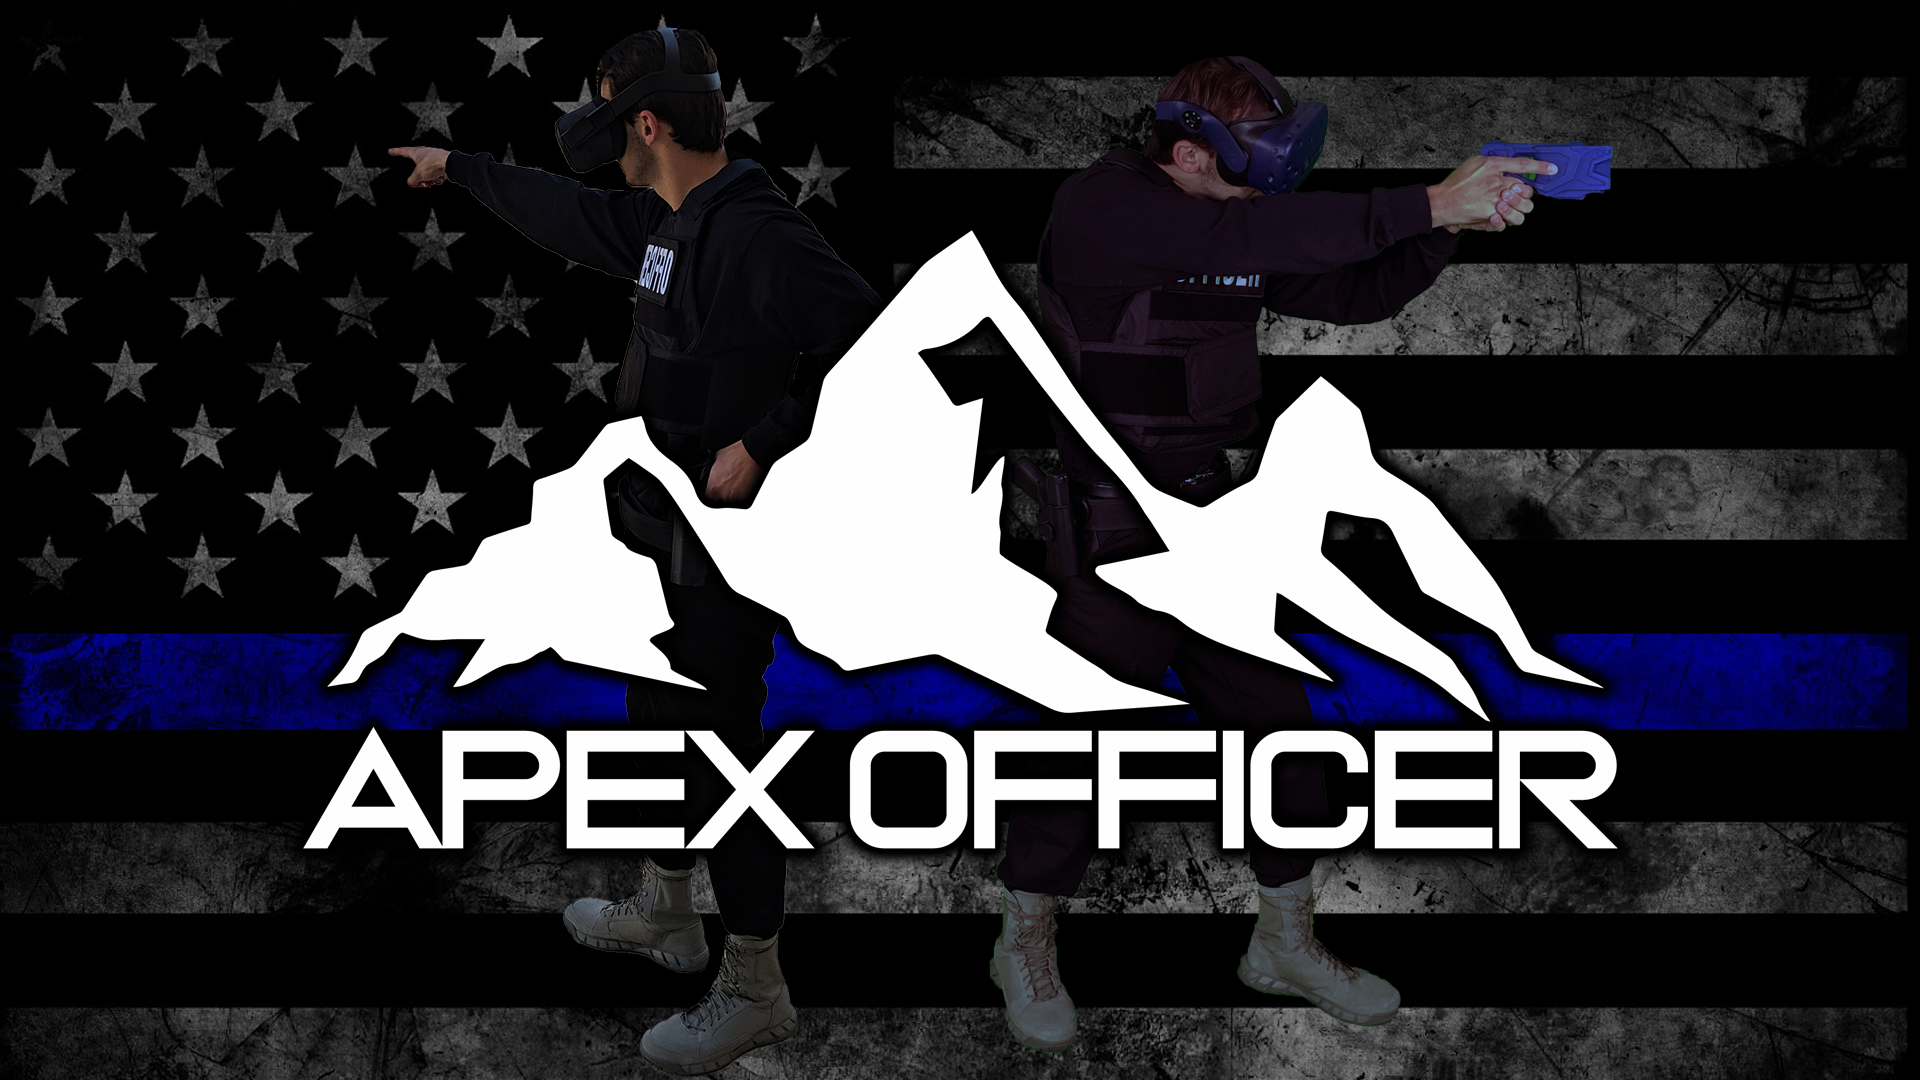 Apex Officer is the #1 VR training simulator for police officers and law enforcement agencies